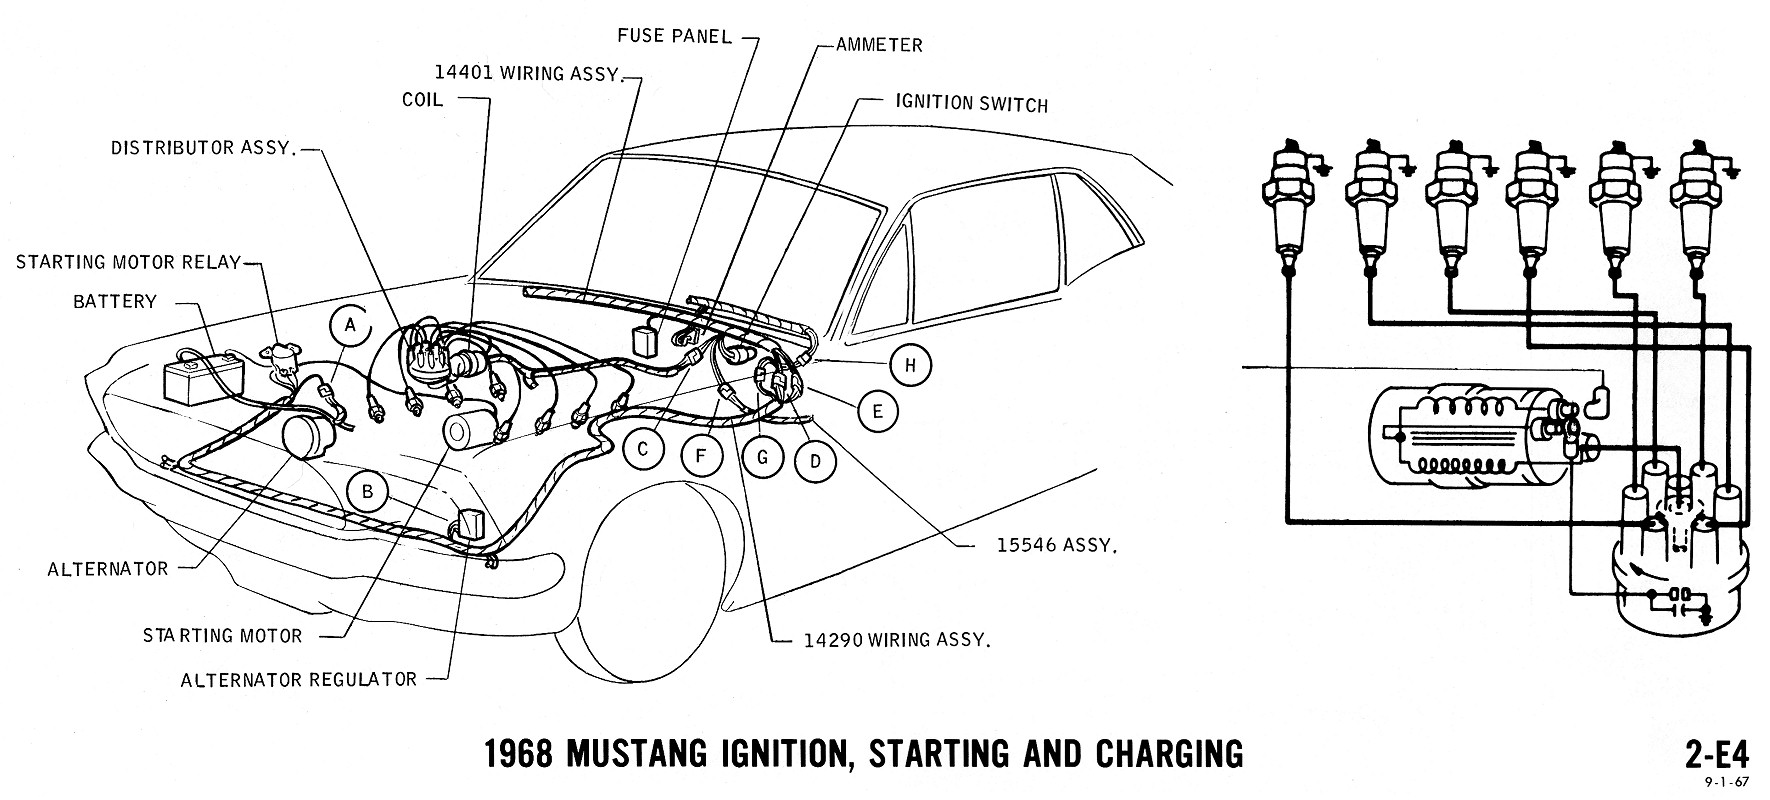 1968 mustang wiring diagram ignition starting charging 2 1968 mustang wiring diagrams and vacuum schematics average joe 67 mustang wiring diagram at alyssarenee.co